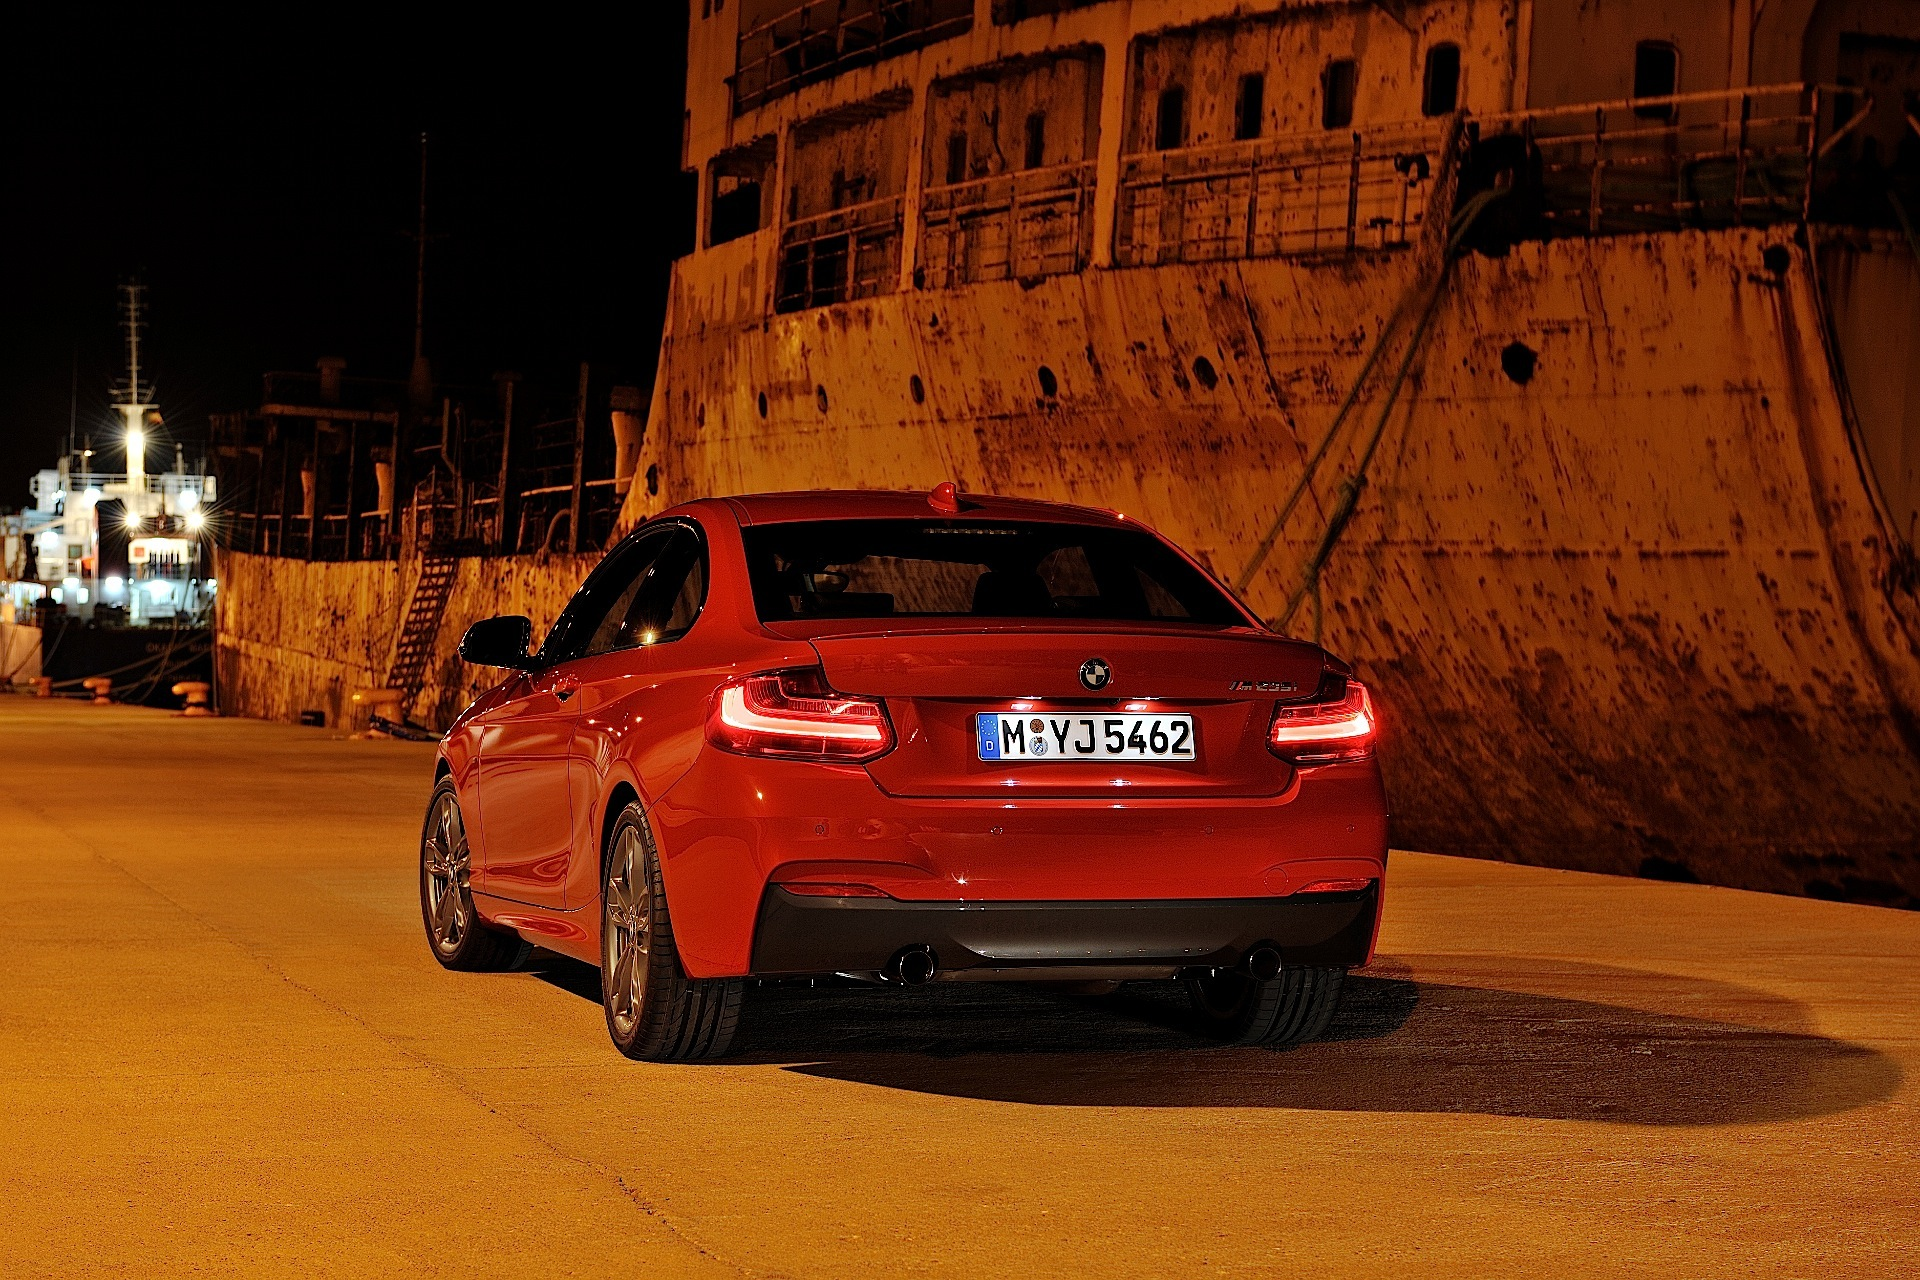 BMW 2 series 228i 2013 photo - 8